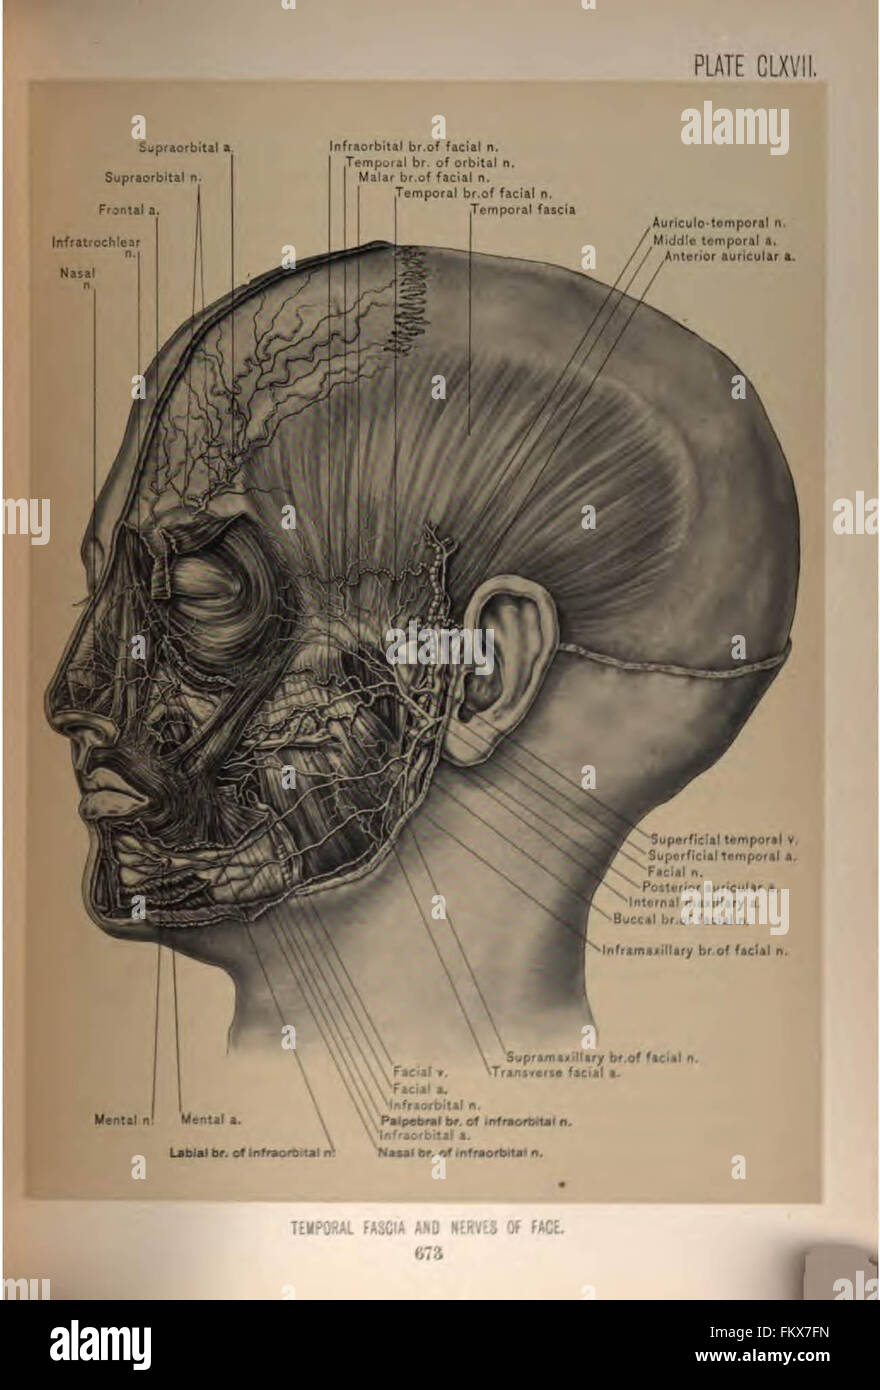 Surgical Anatomy Of The Head And Neck By Deaver John B John Stock